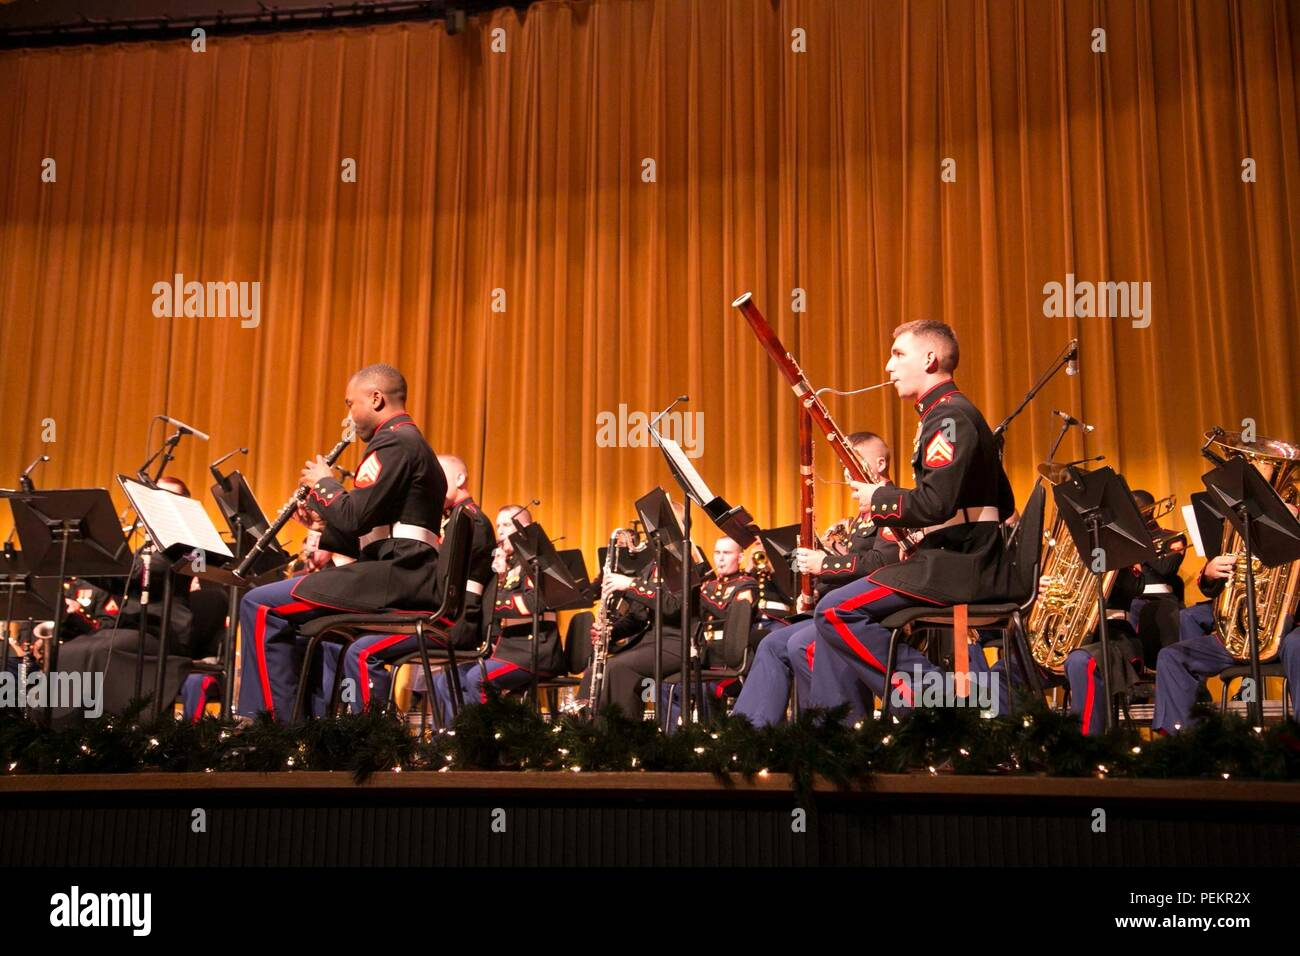 The Iii Marine Expeditionary Force Band Performs A Christmas Concert